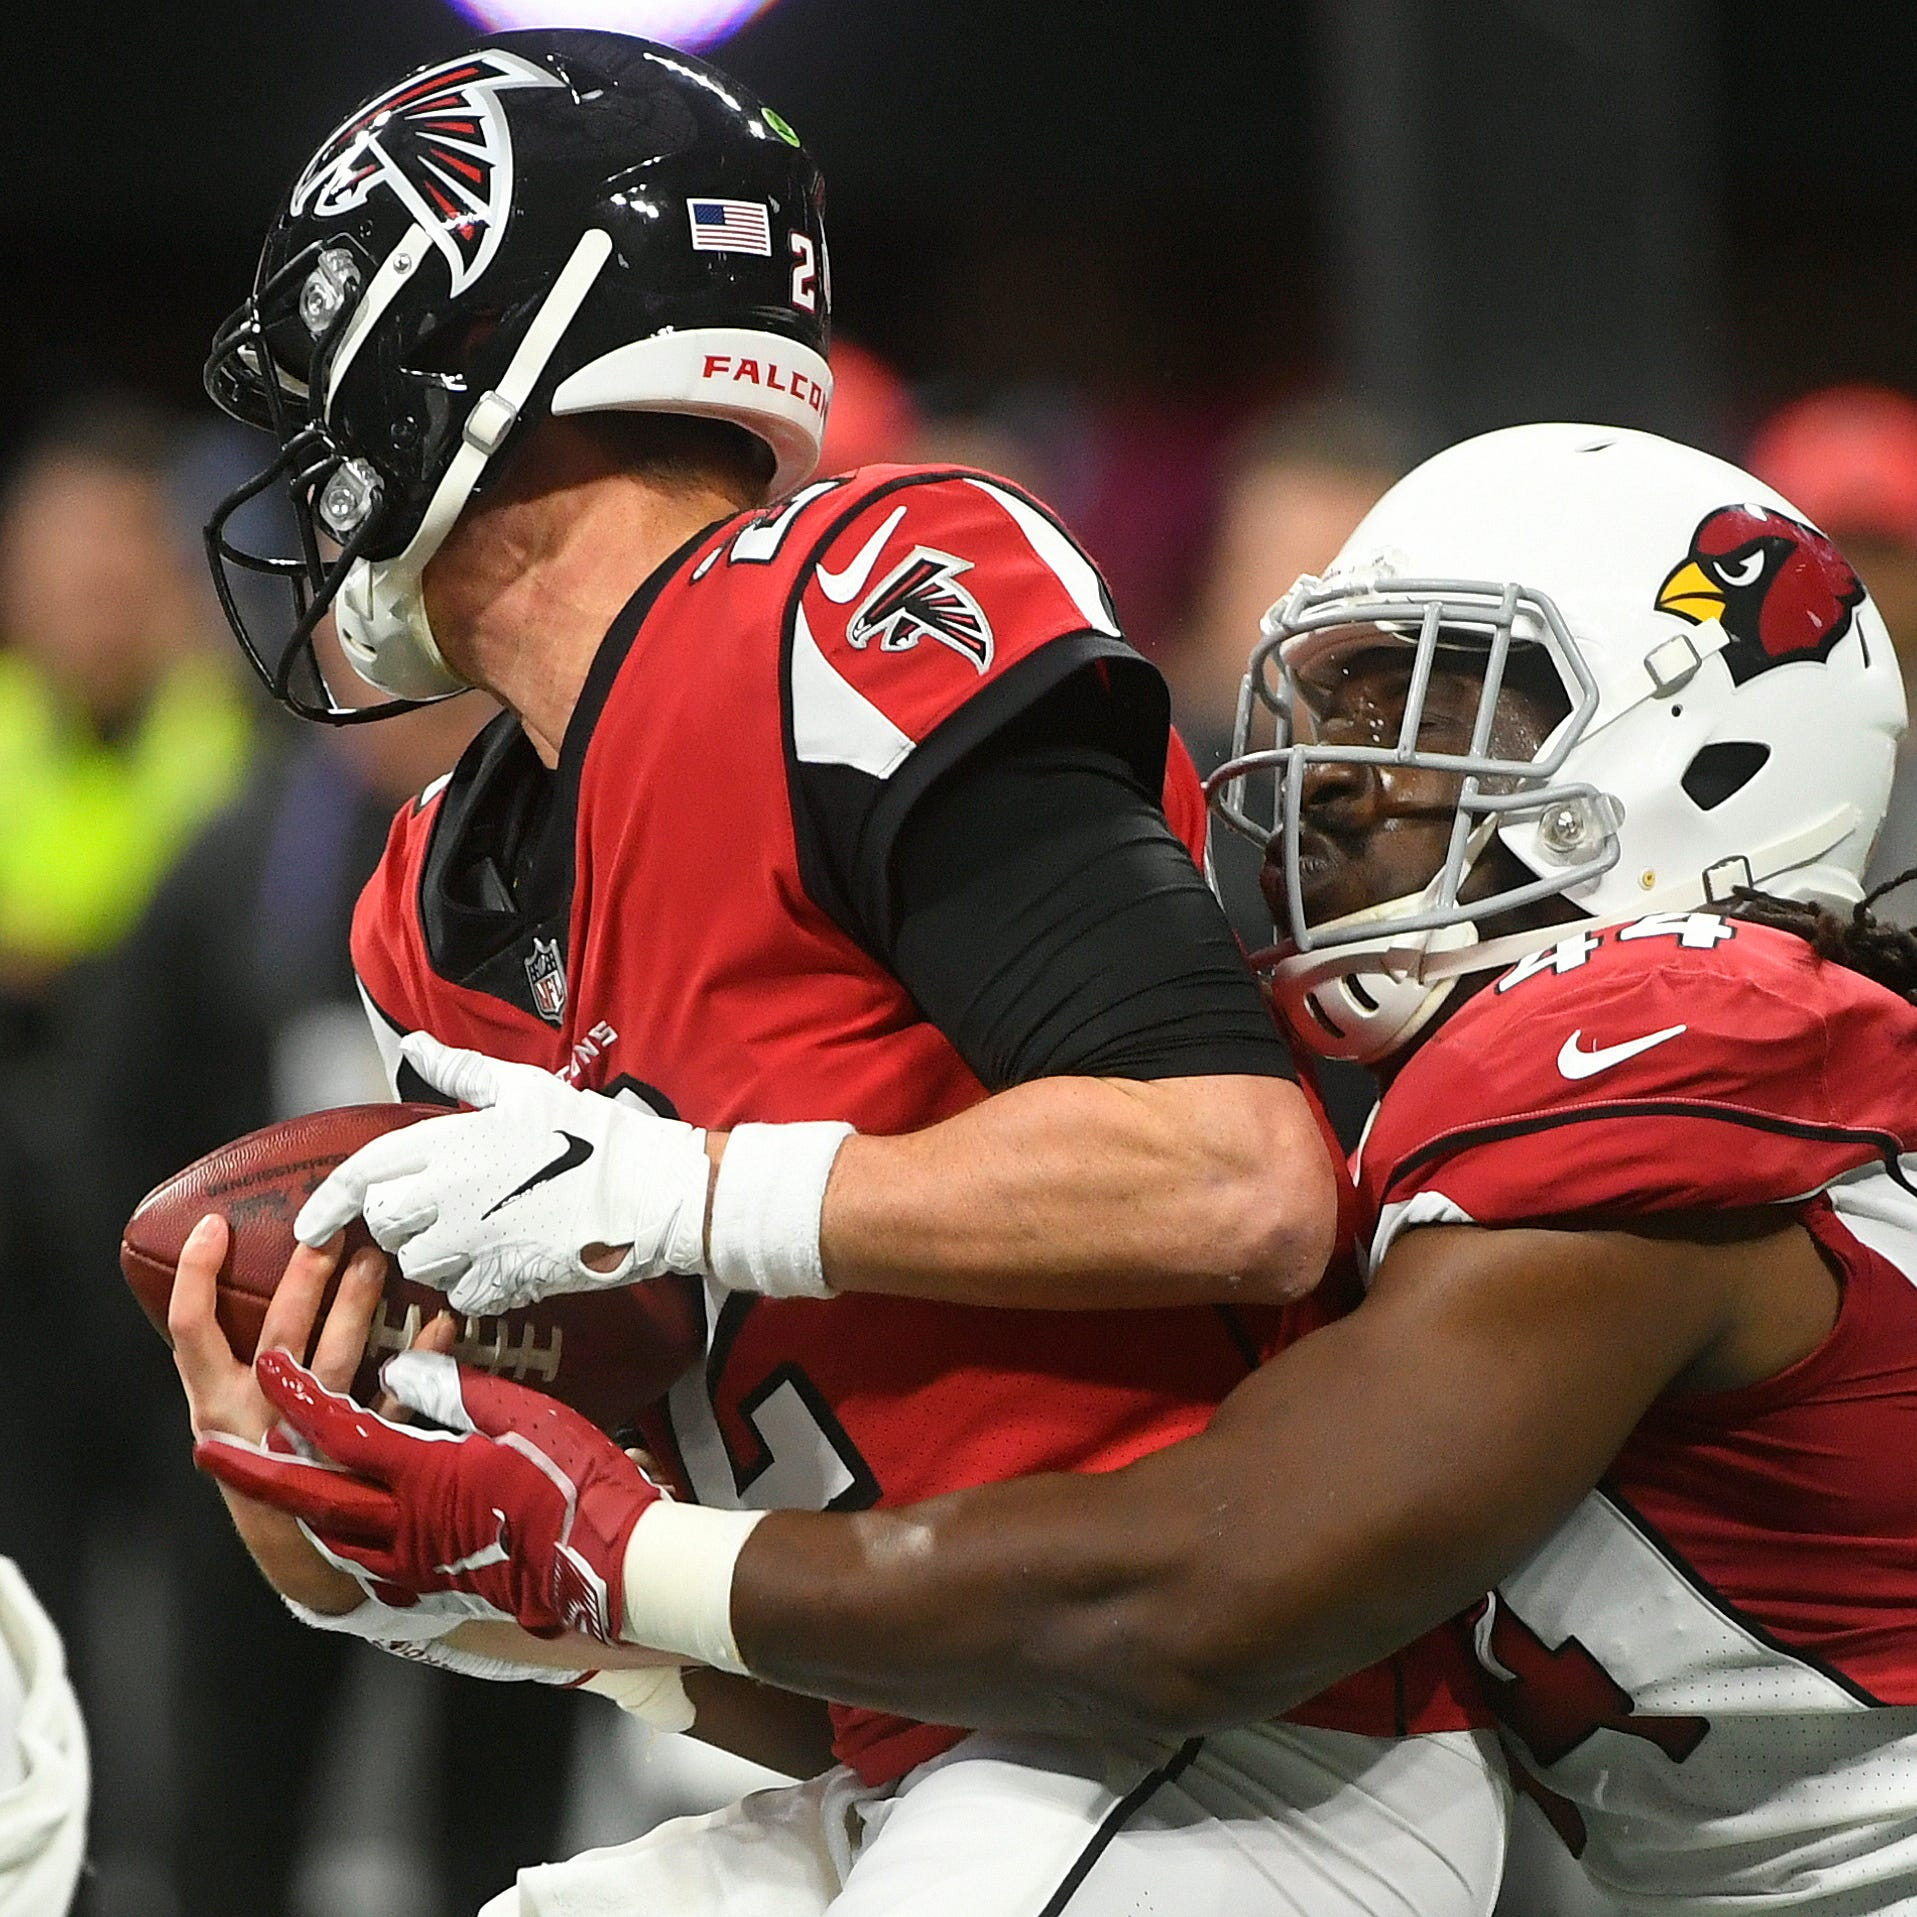 Live updates: Josh Rosen, Cardinals trail Falcons at halftime